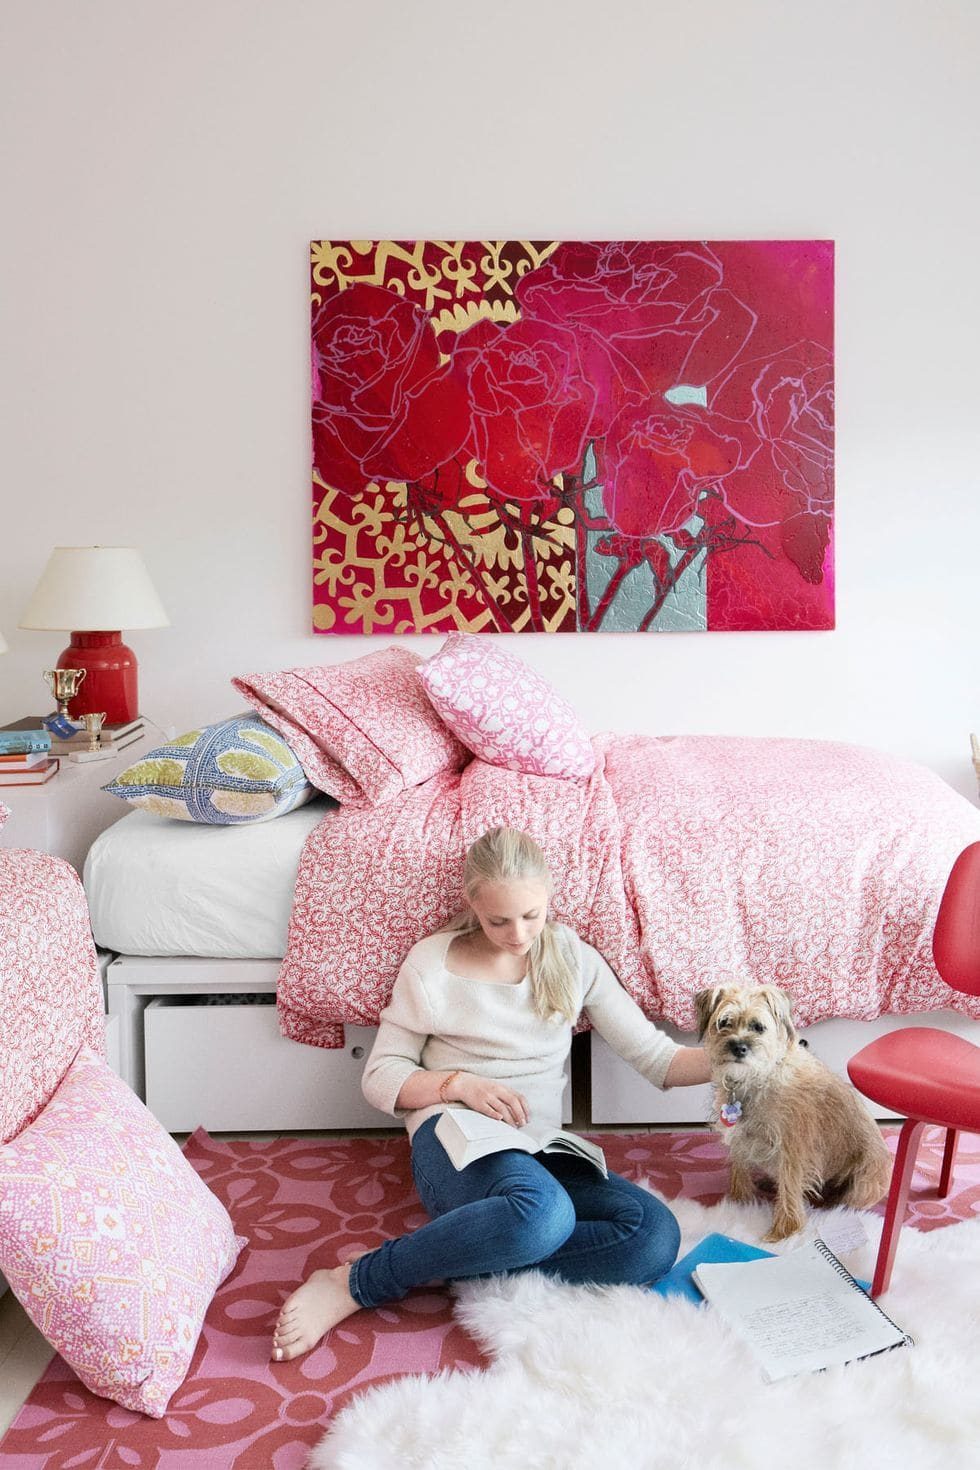 11 Stylish Teenage Girls Bedroom Ideas on Teenage Bedroom Ideas  id=56411